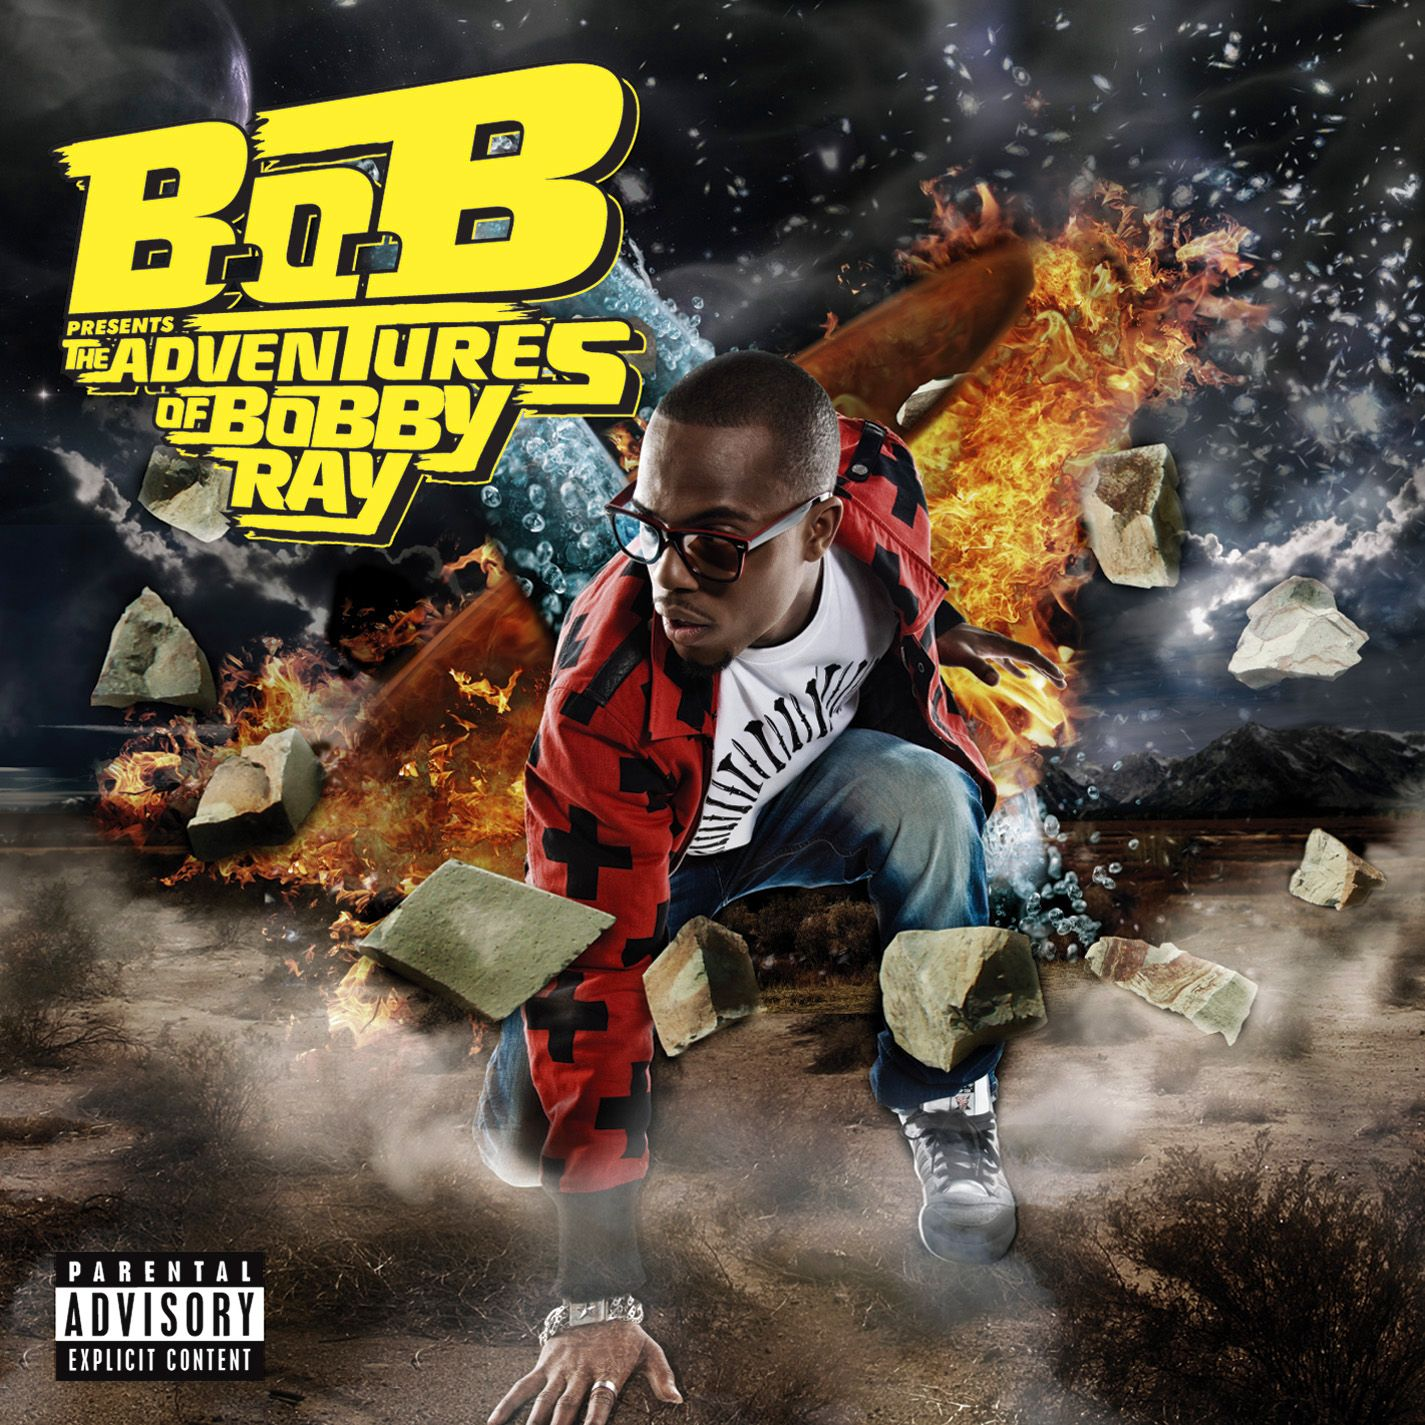 B.o.B - B.o.b Presents: The Adventures Of Bobby Ray album cover